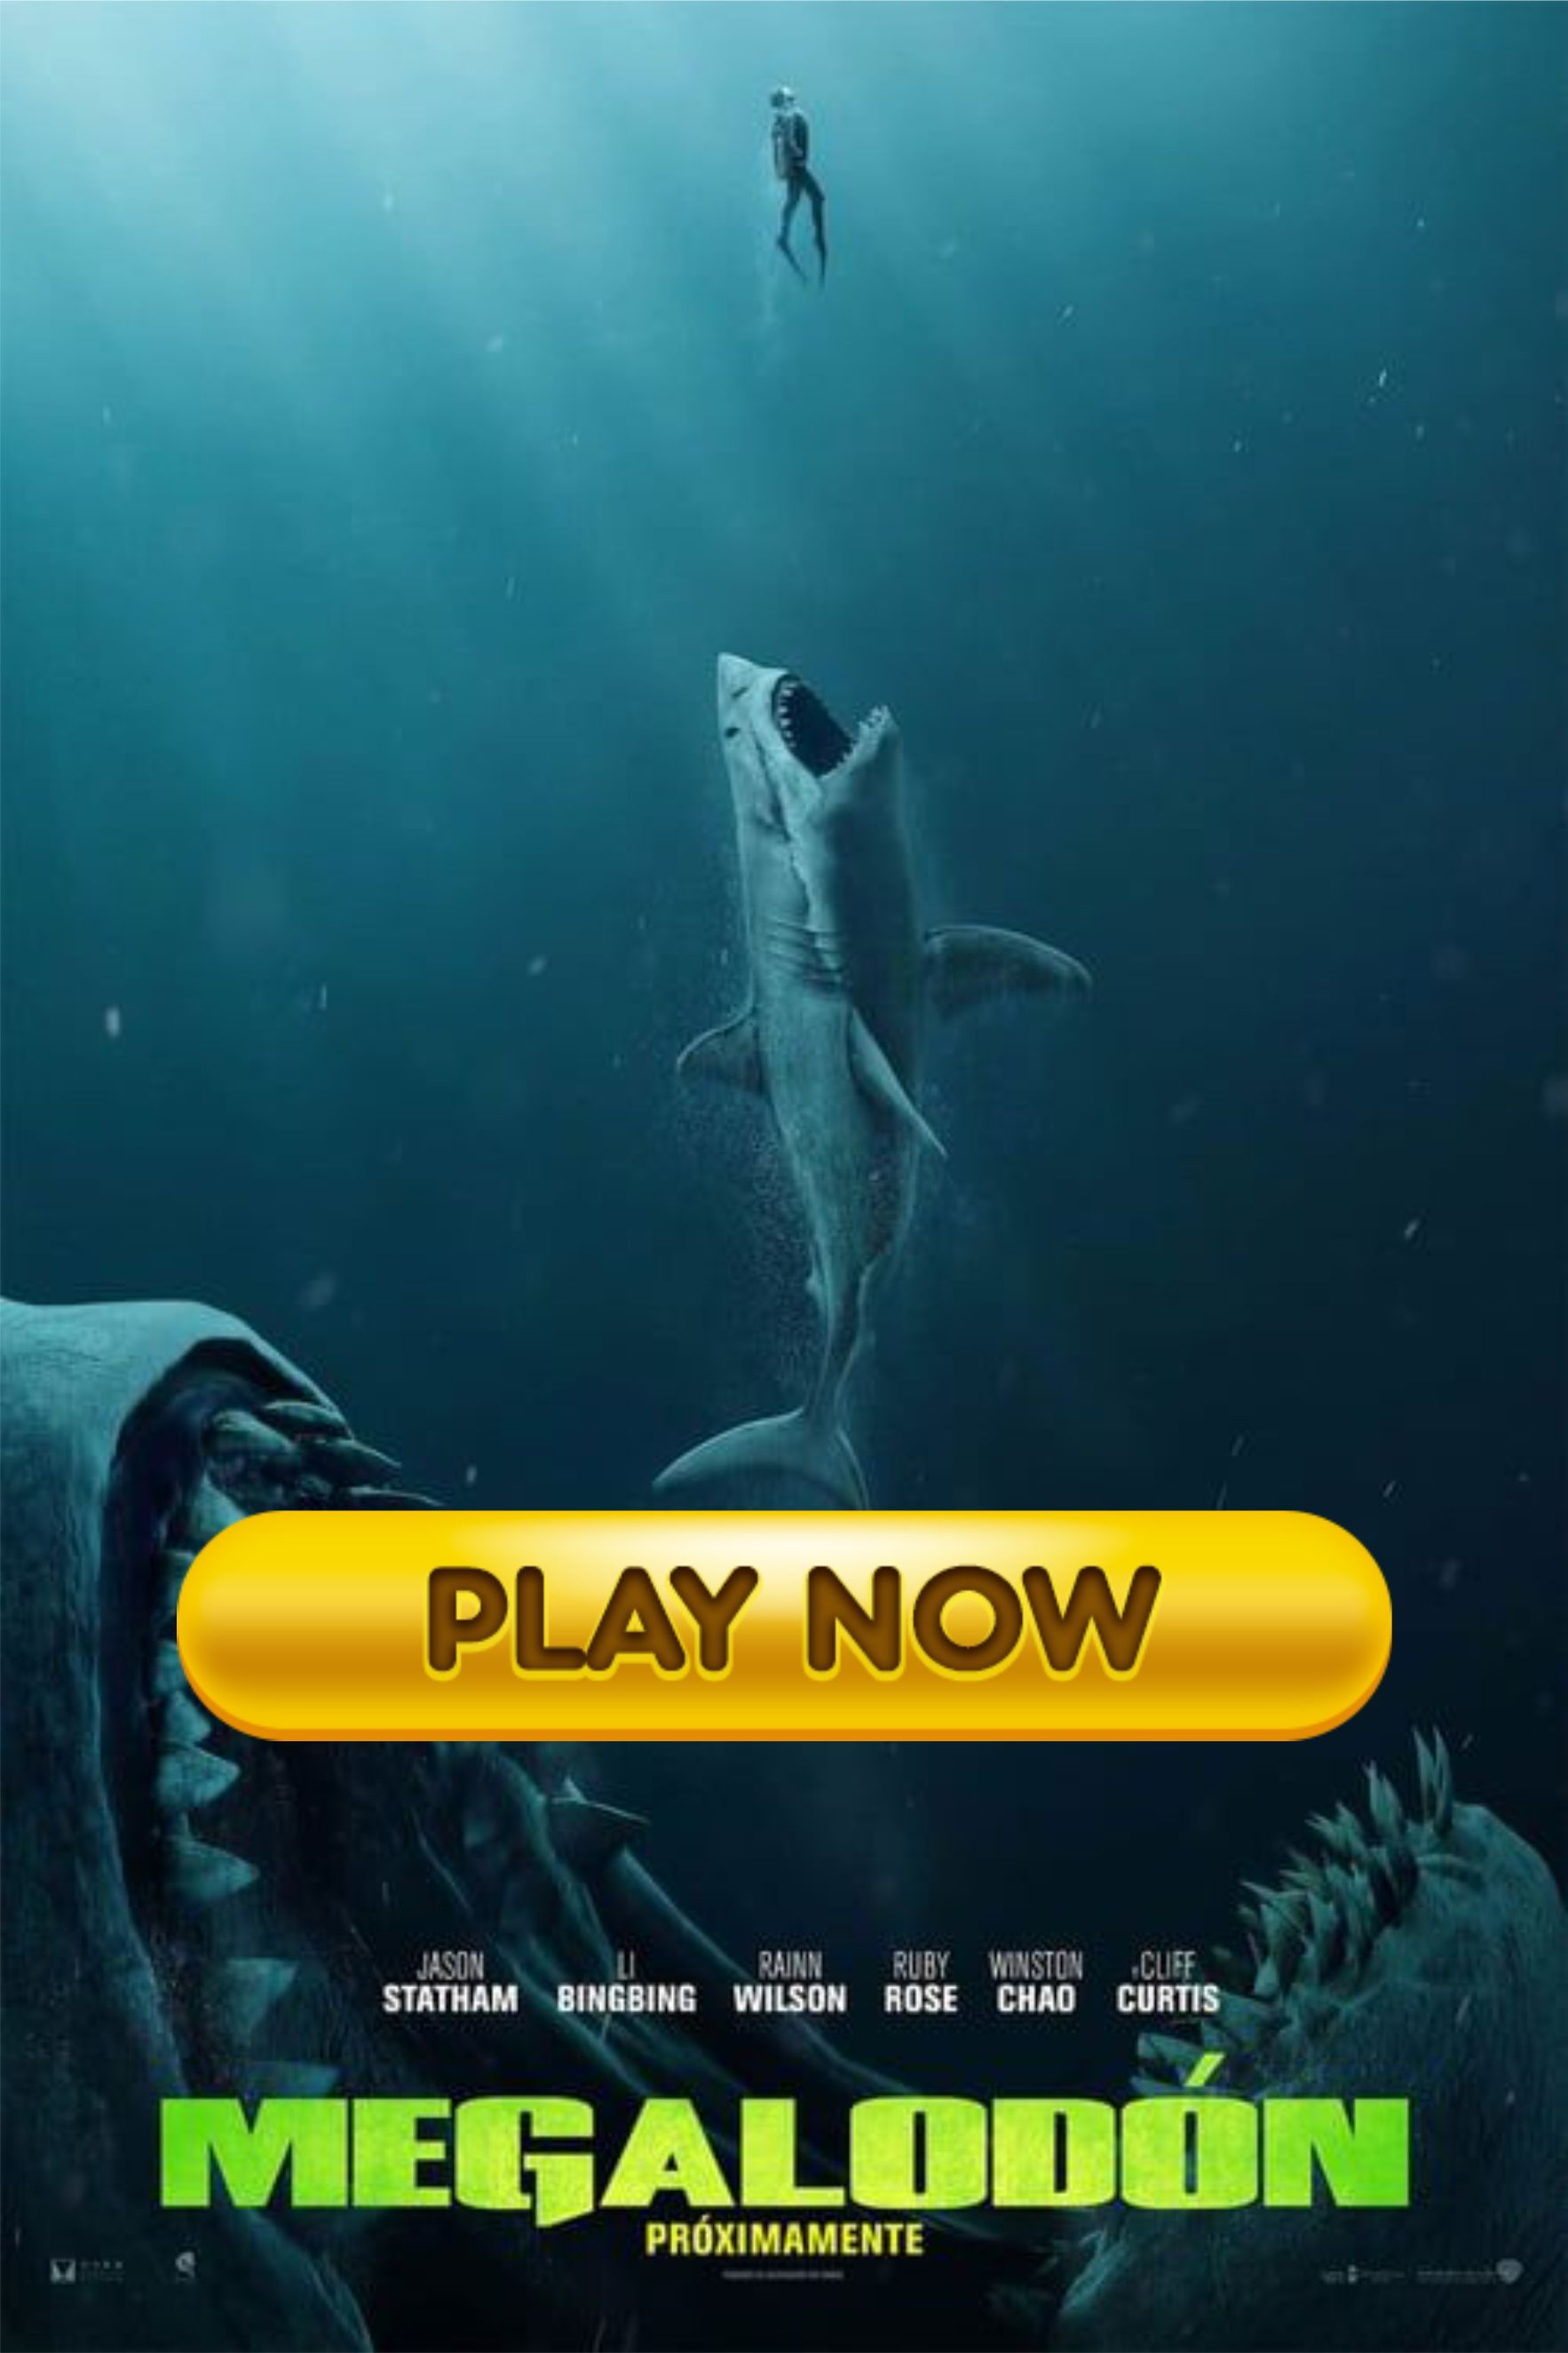 Ver Megalodon 2018 Online Espanol Pelicula Hd Completa Full Movies Marianas Trench Movies